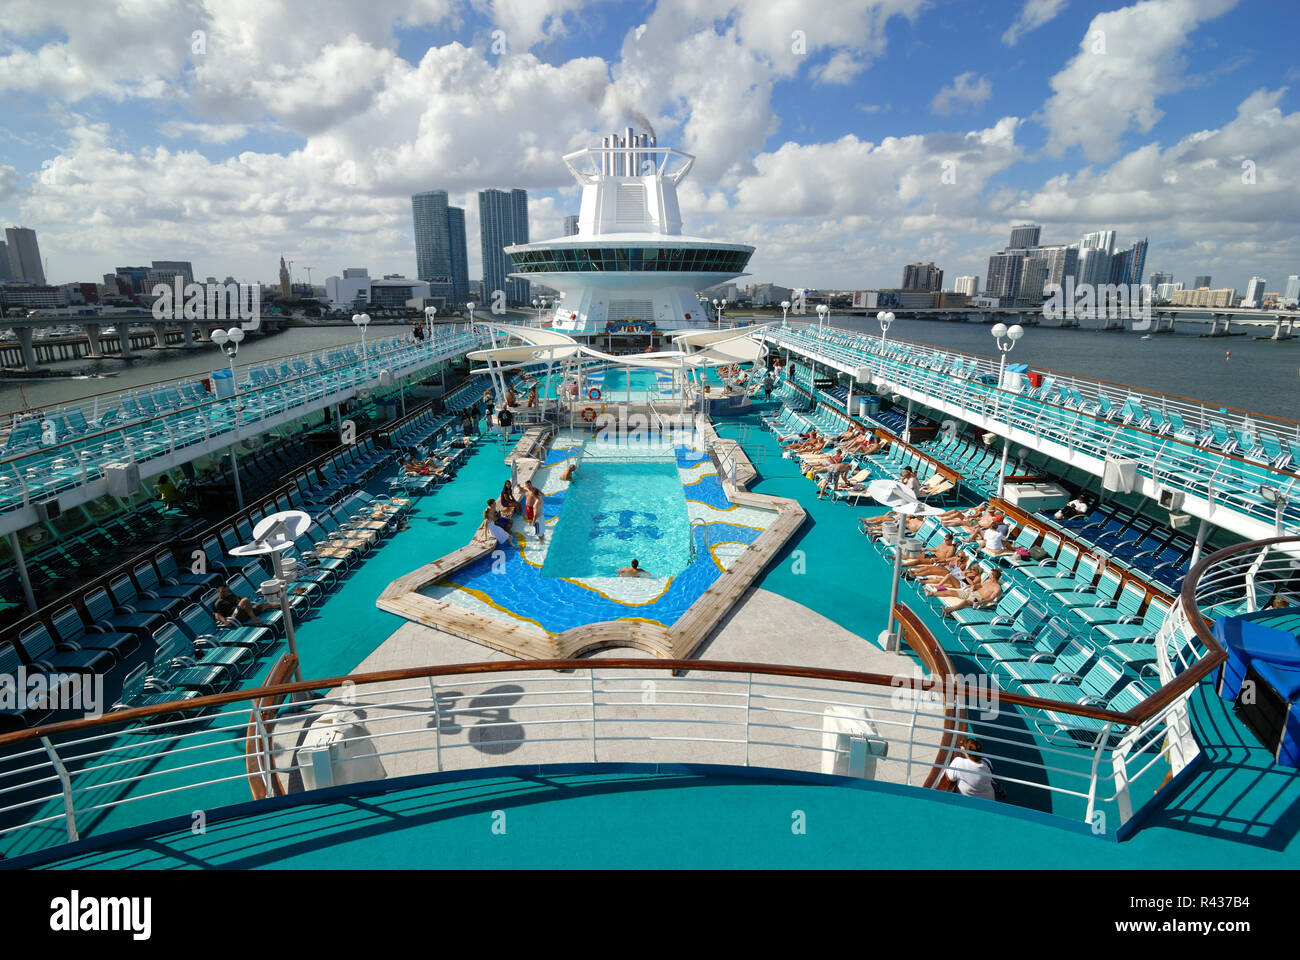 The pool deck on Royal Caribbean Interational's Majesty of the Seas cruise ship, against the Miami, Florida background. - Stock Image